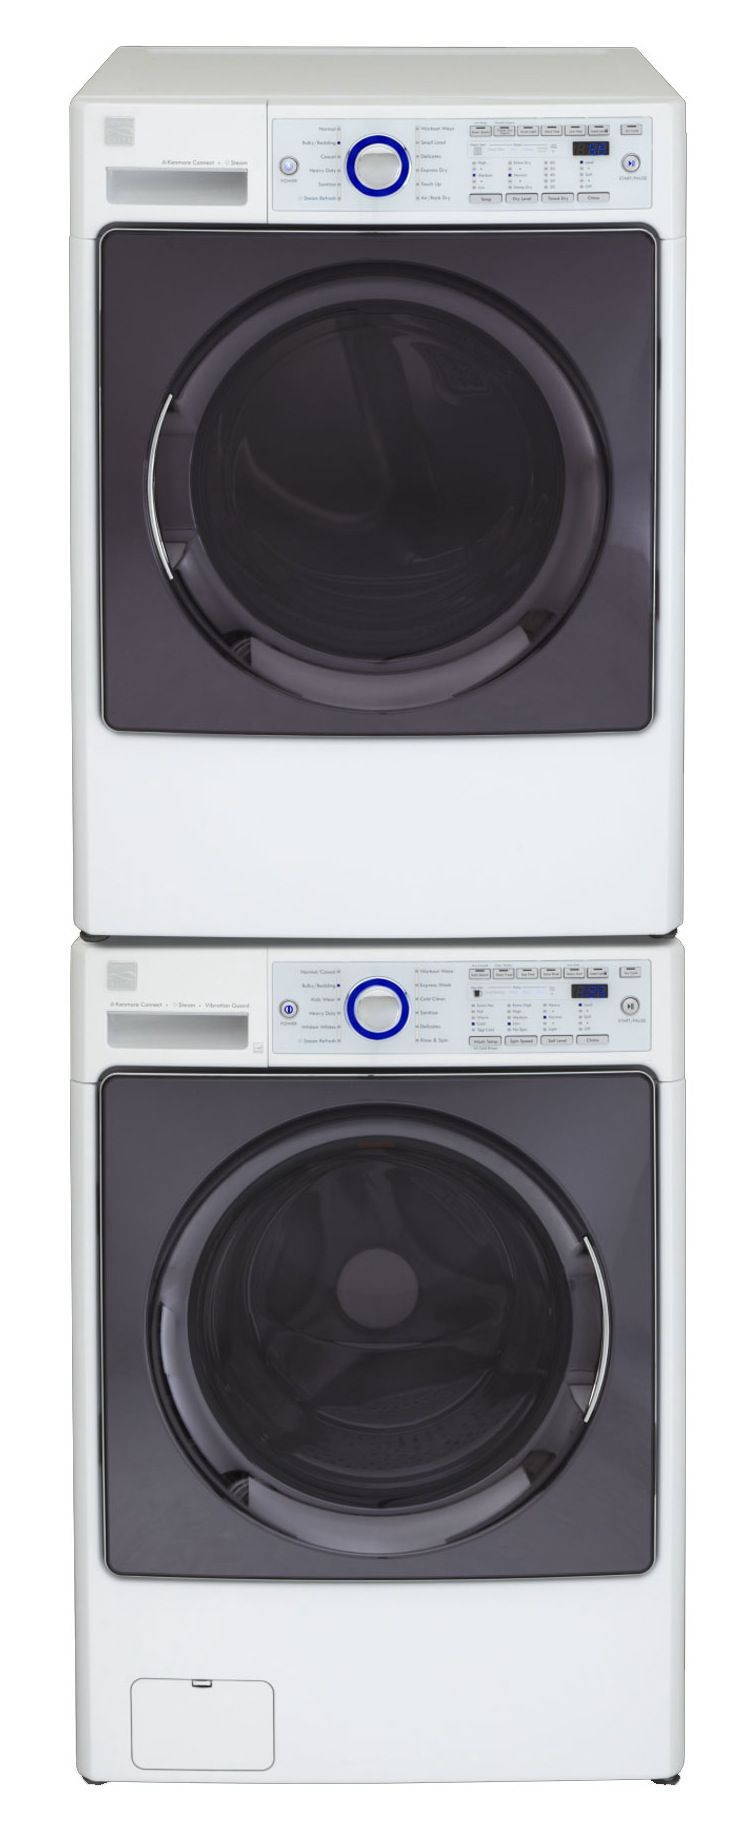 Kenmore Elite Front-load Steam Washing Machine 4.3 cubic feet